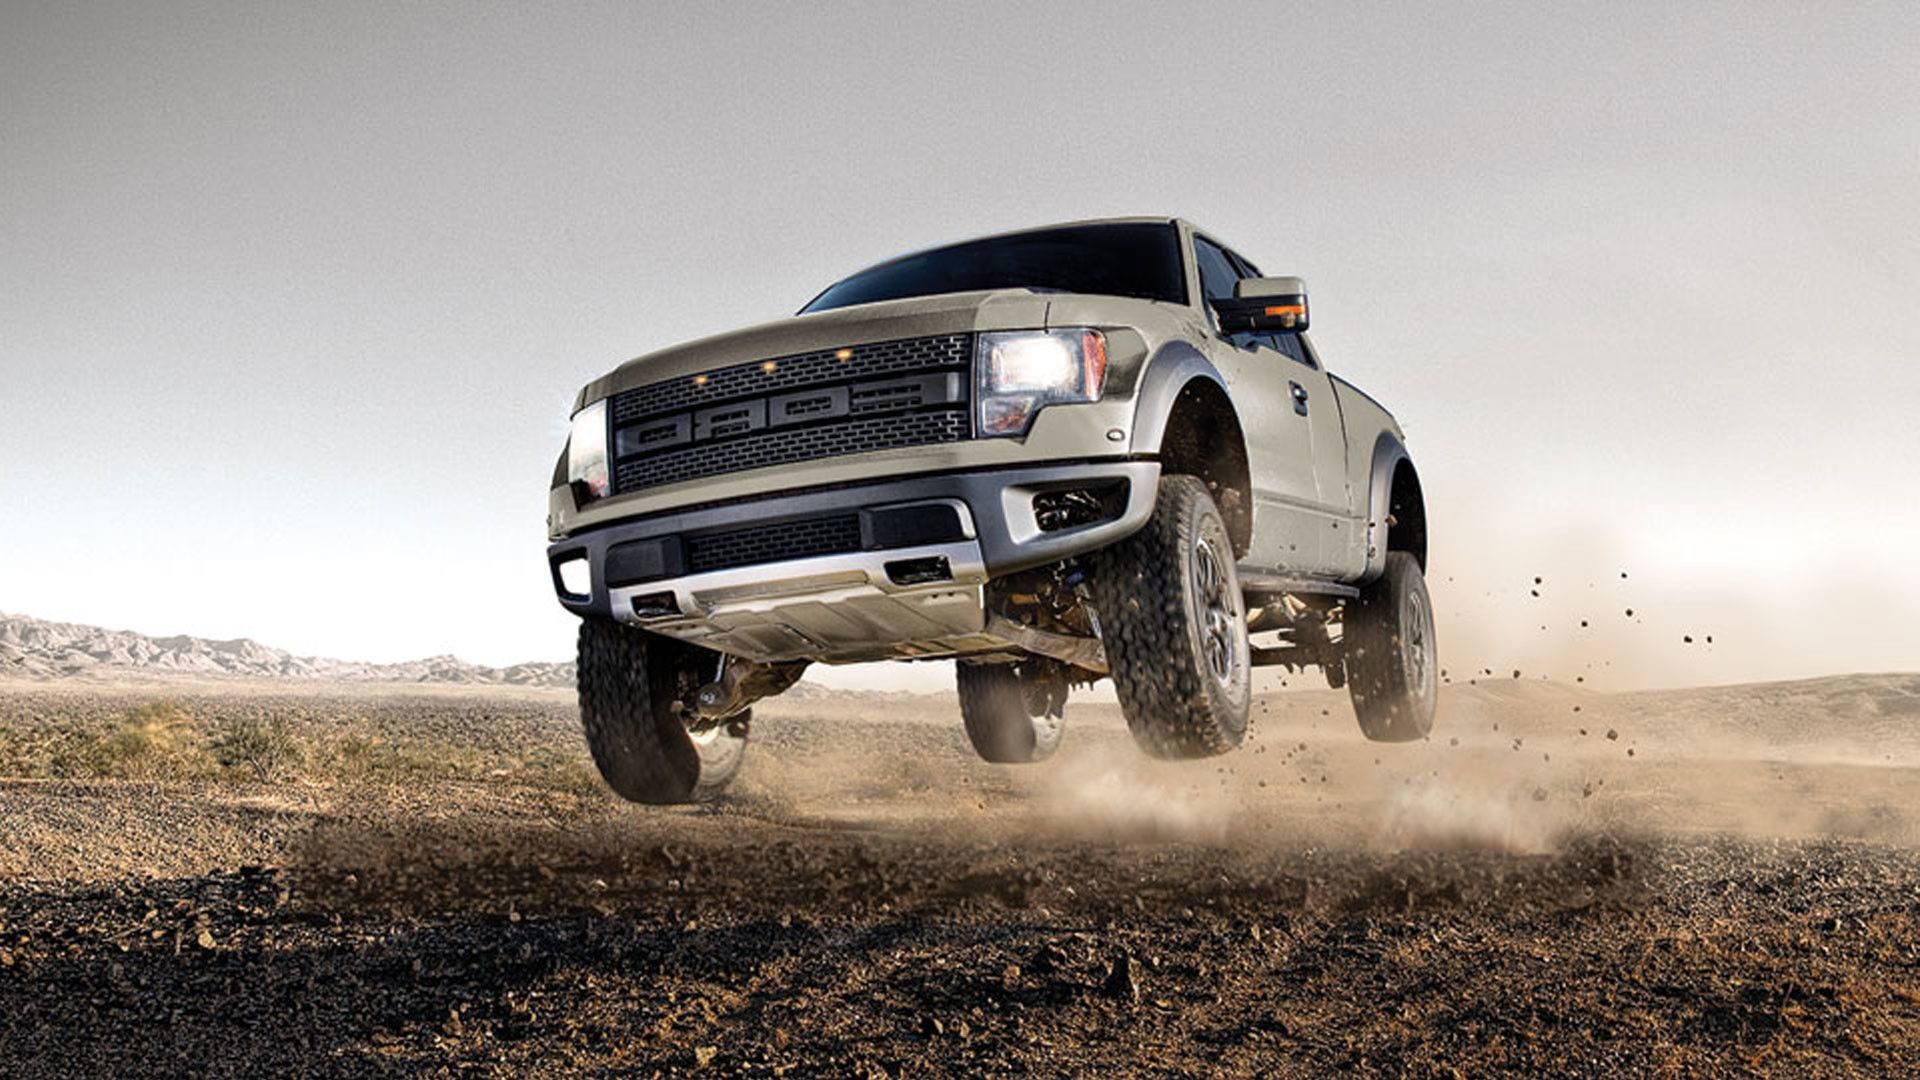 1920x1080 ford raptor browser themes desktop background 1920x1080 ford raptor browser themes desktop background voltagebd Gallery